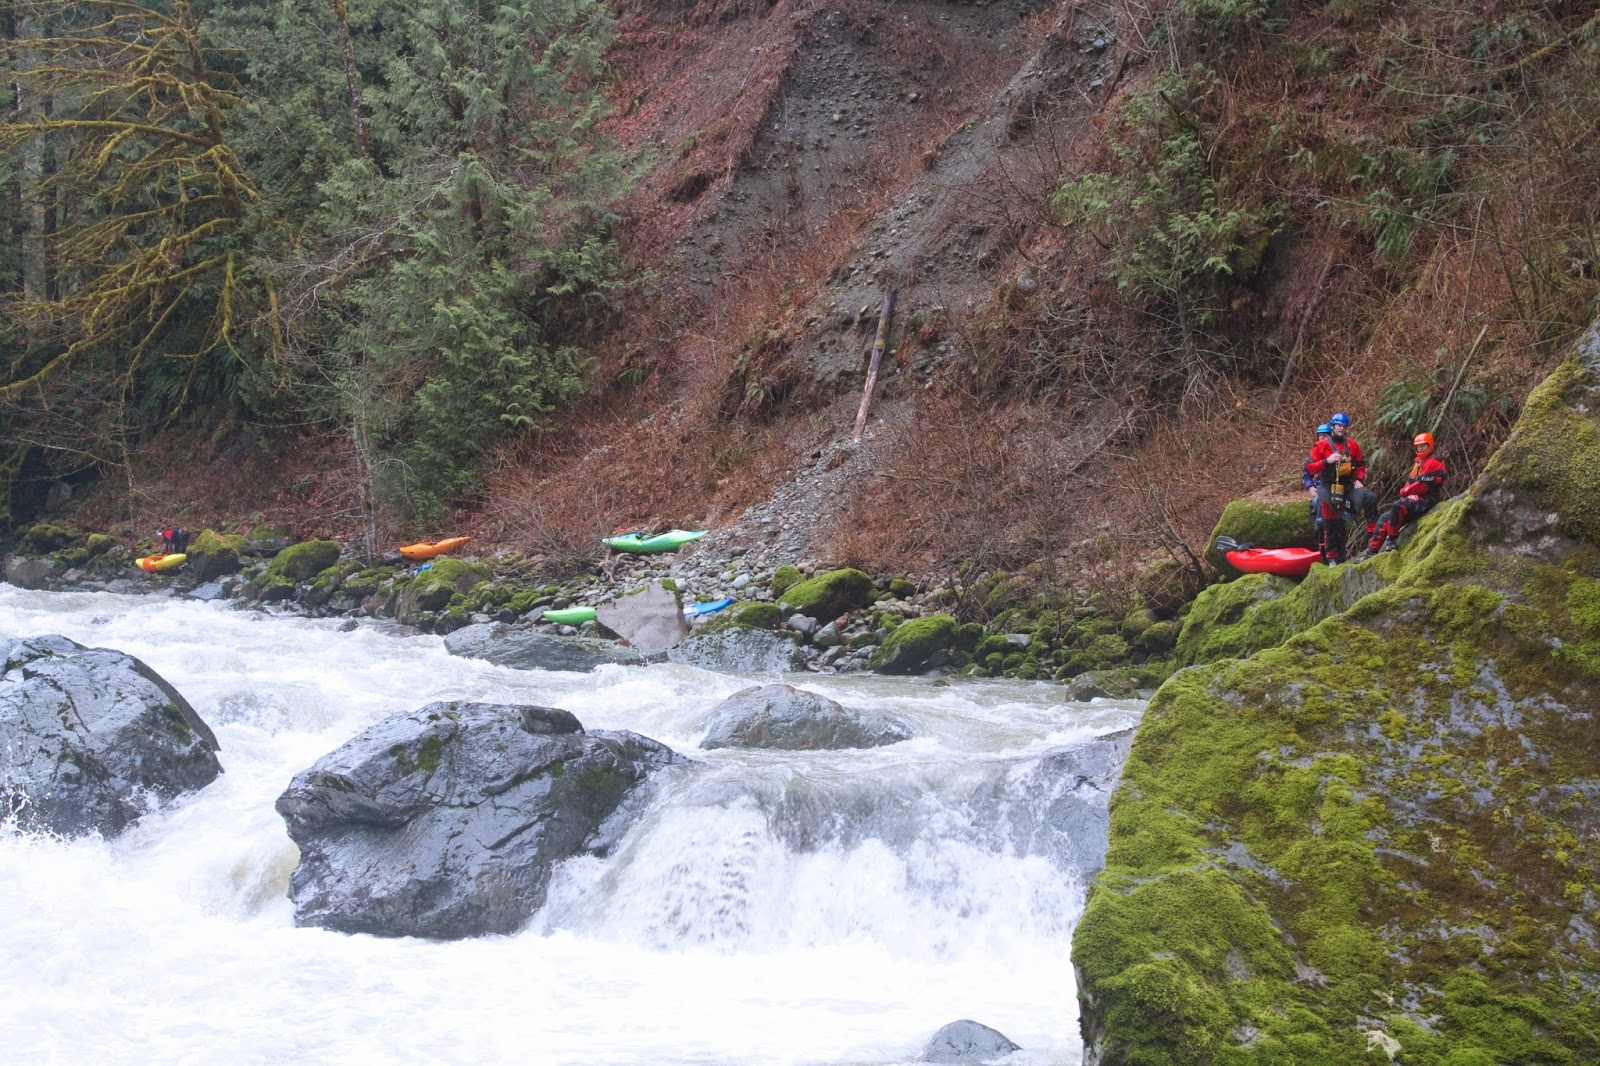 Deer Creek, Oso Washington, Badass Rivers, Kayaking near Oso, Oso river, Adrian Wigston, Brad Xanthopolous, Brock Gavery, Sean Lee, Mike Nash, Mamba 8.6 Creeker, Dagger Mamba 8.6